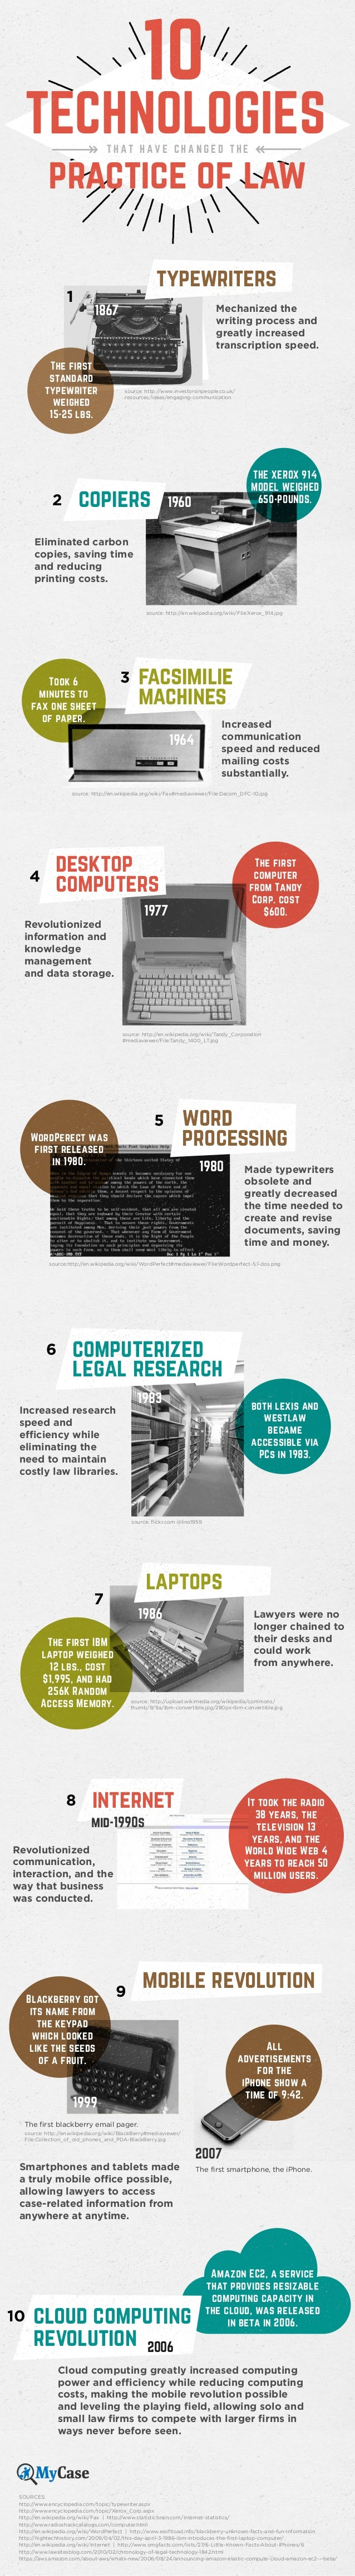 computerized legal research 1983 6 TECHNOLOGIES practice of law 10 T H A T H A V E C H A N G E D T H E 5 word processing 1...